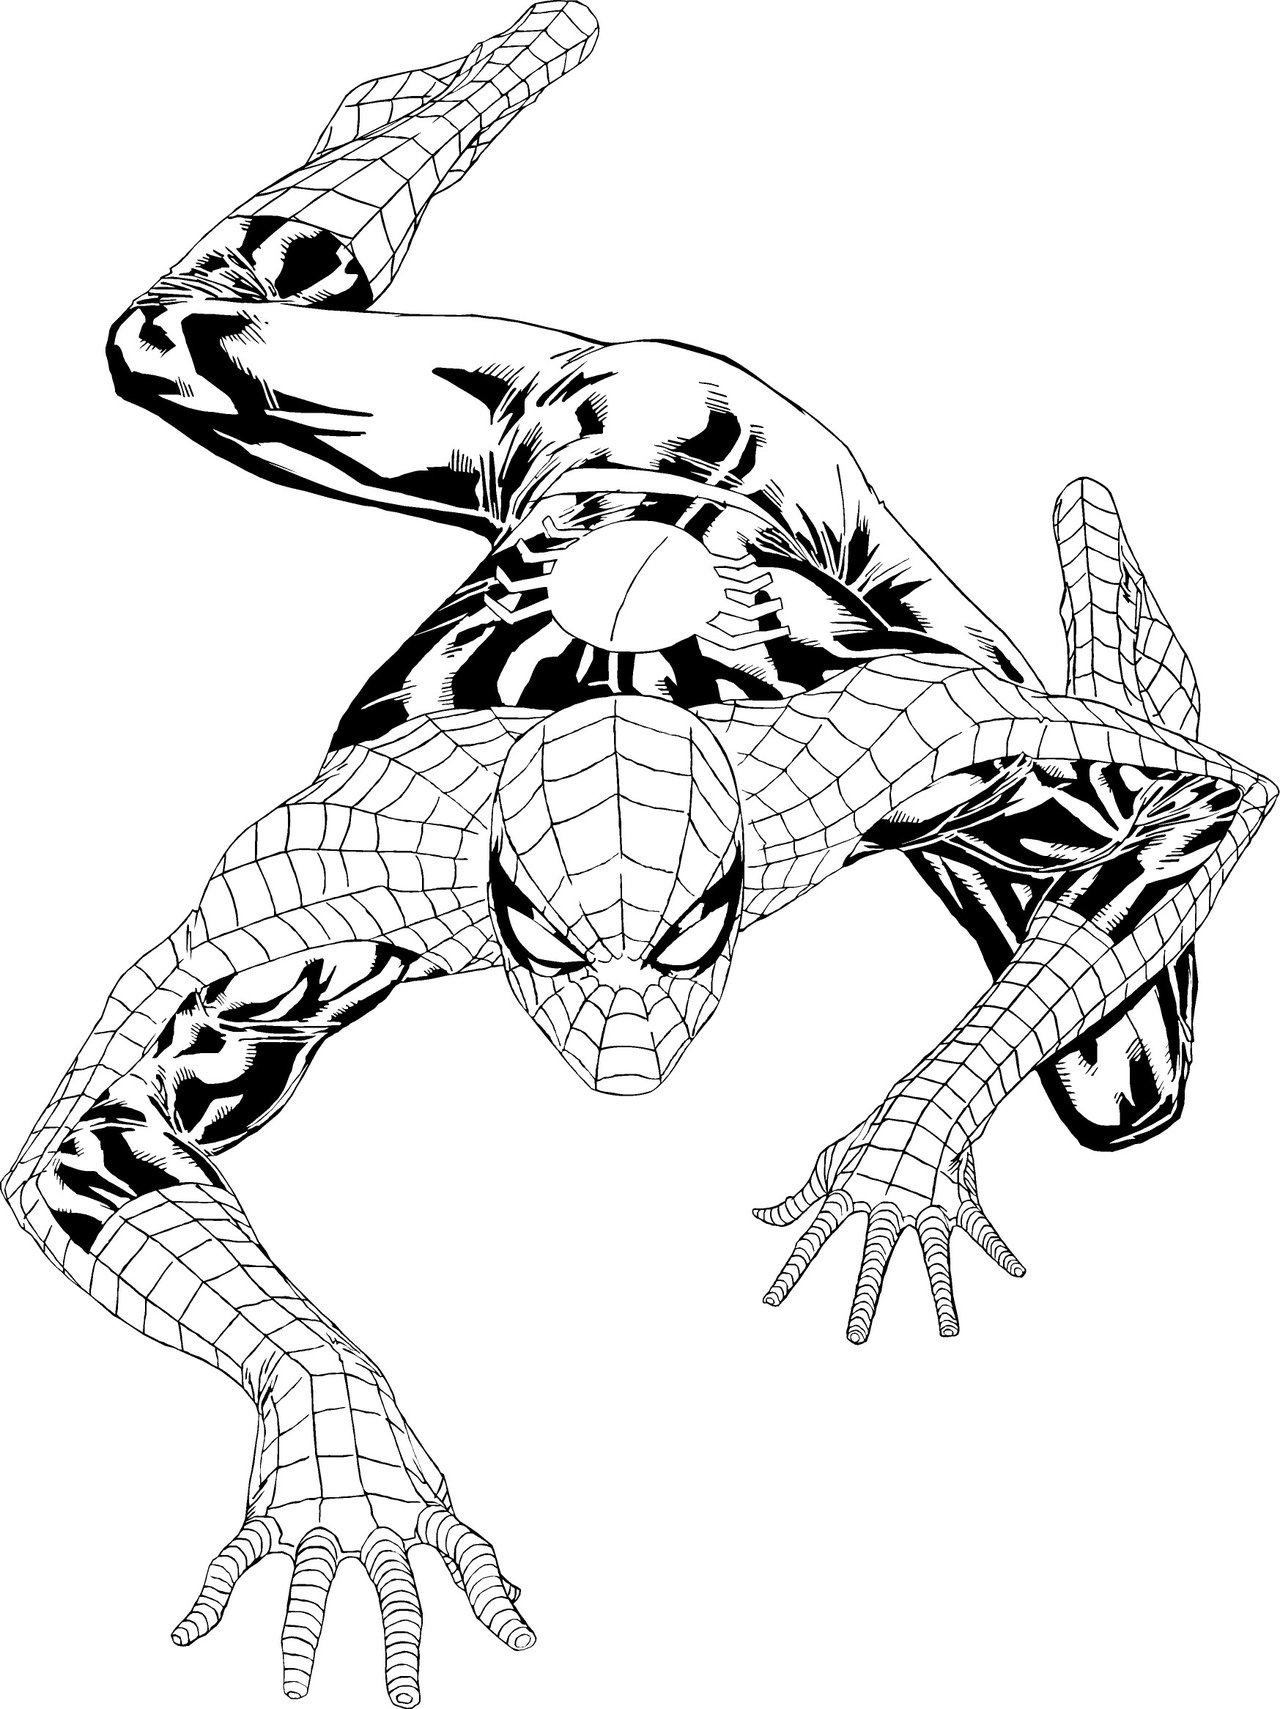 coloring spiderman color spiderman to print spiderman kids coloring pages coloring color spiderman